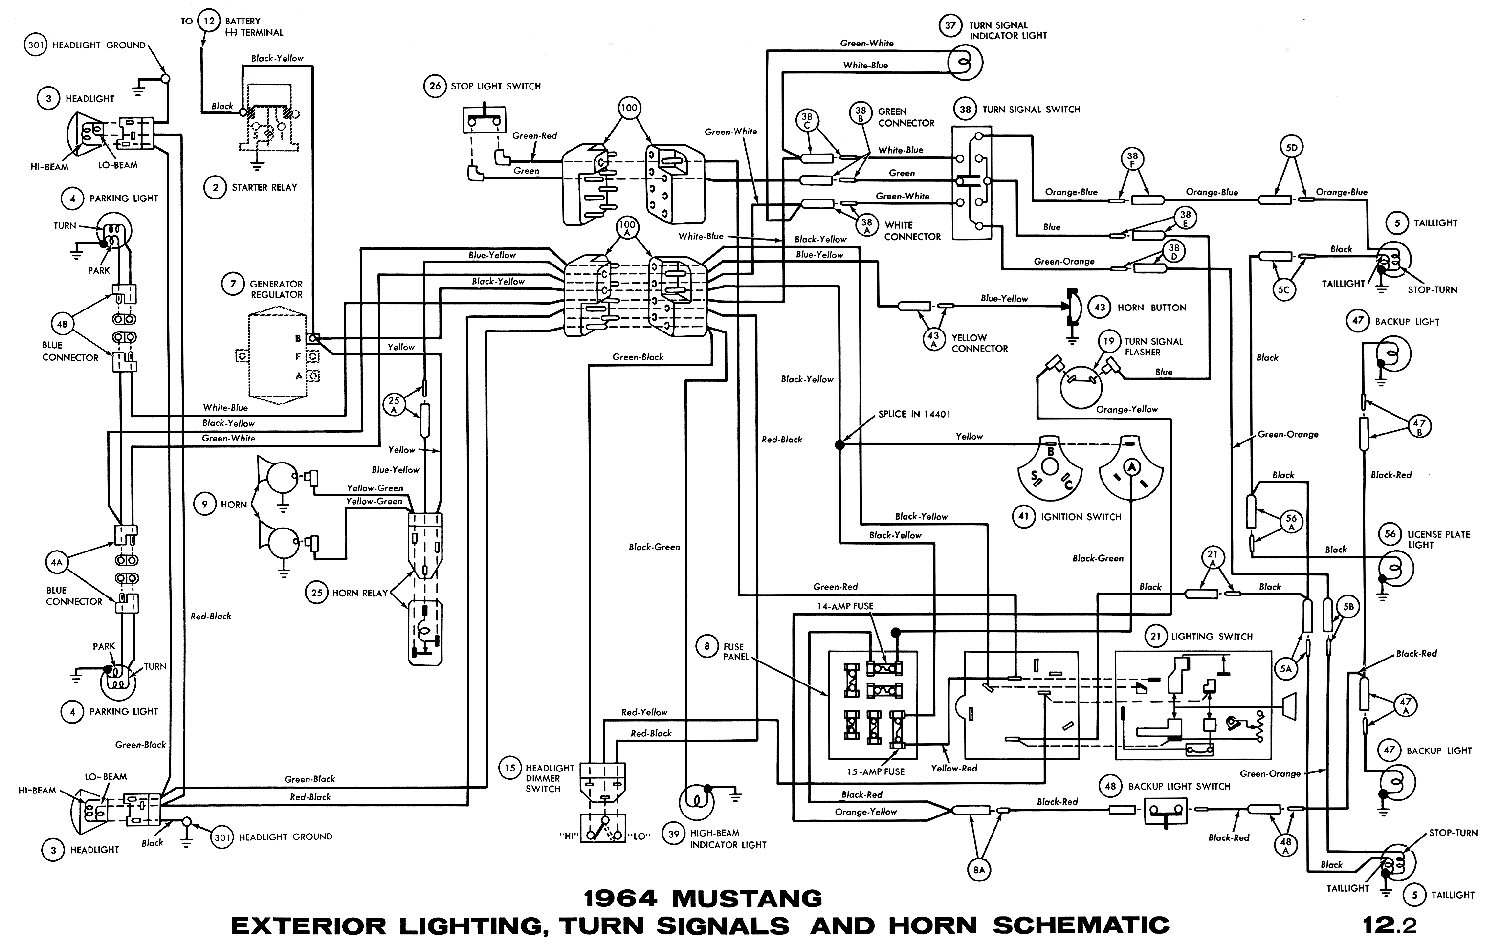 Wiring Diagram Of Horn : Mustang horn diagram wiring images